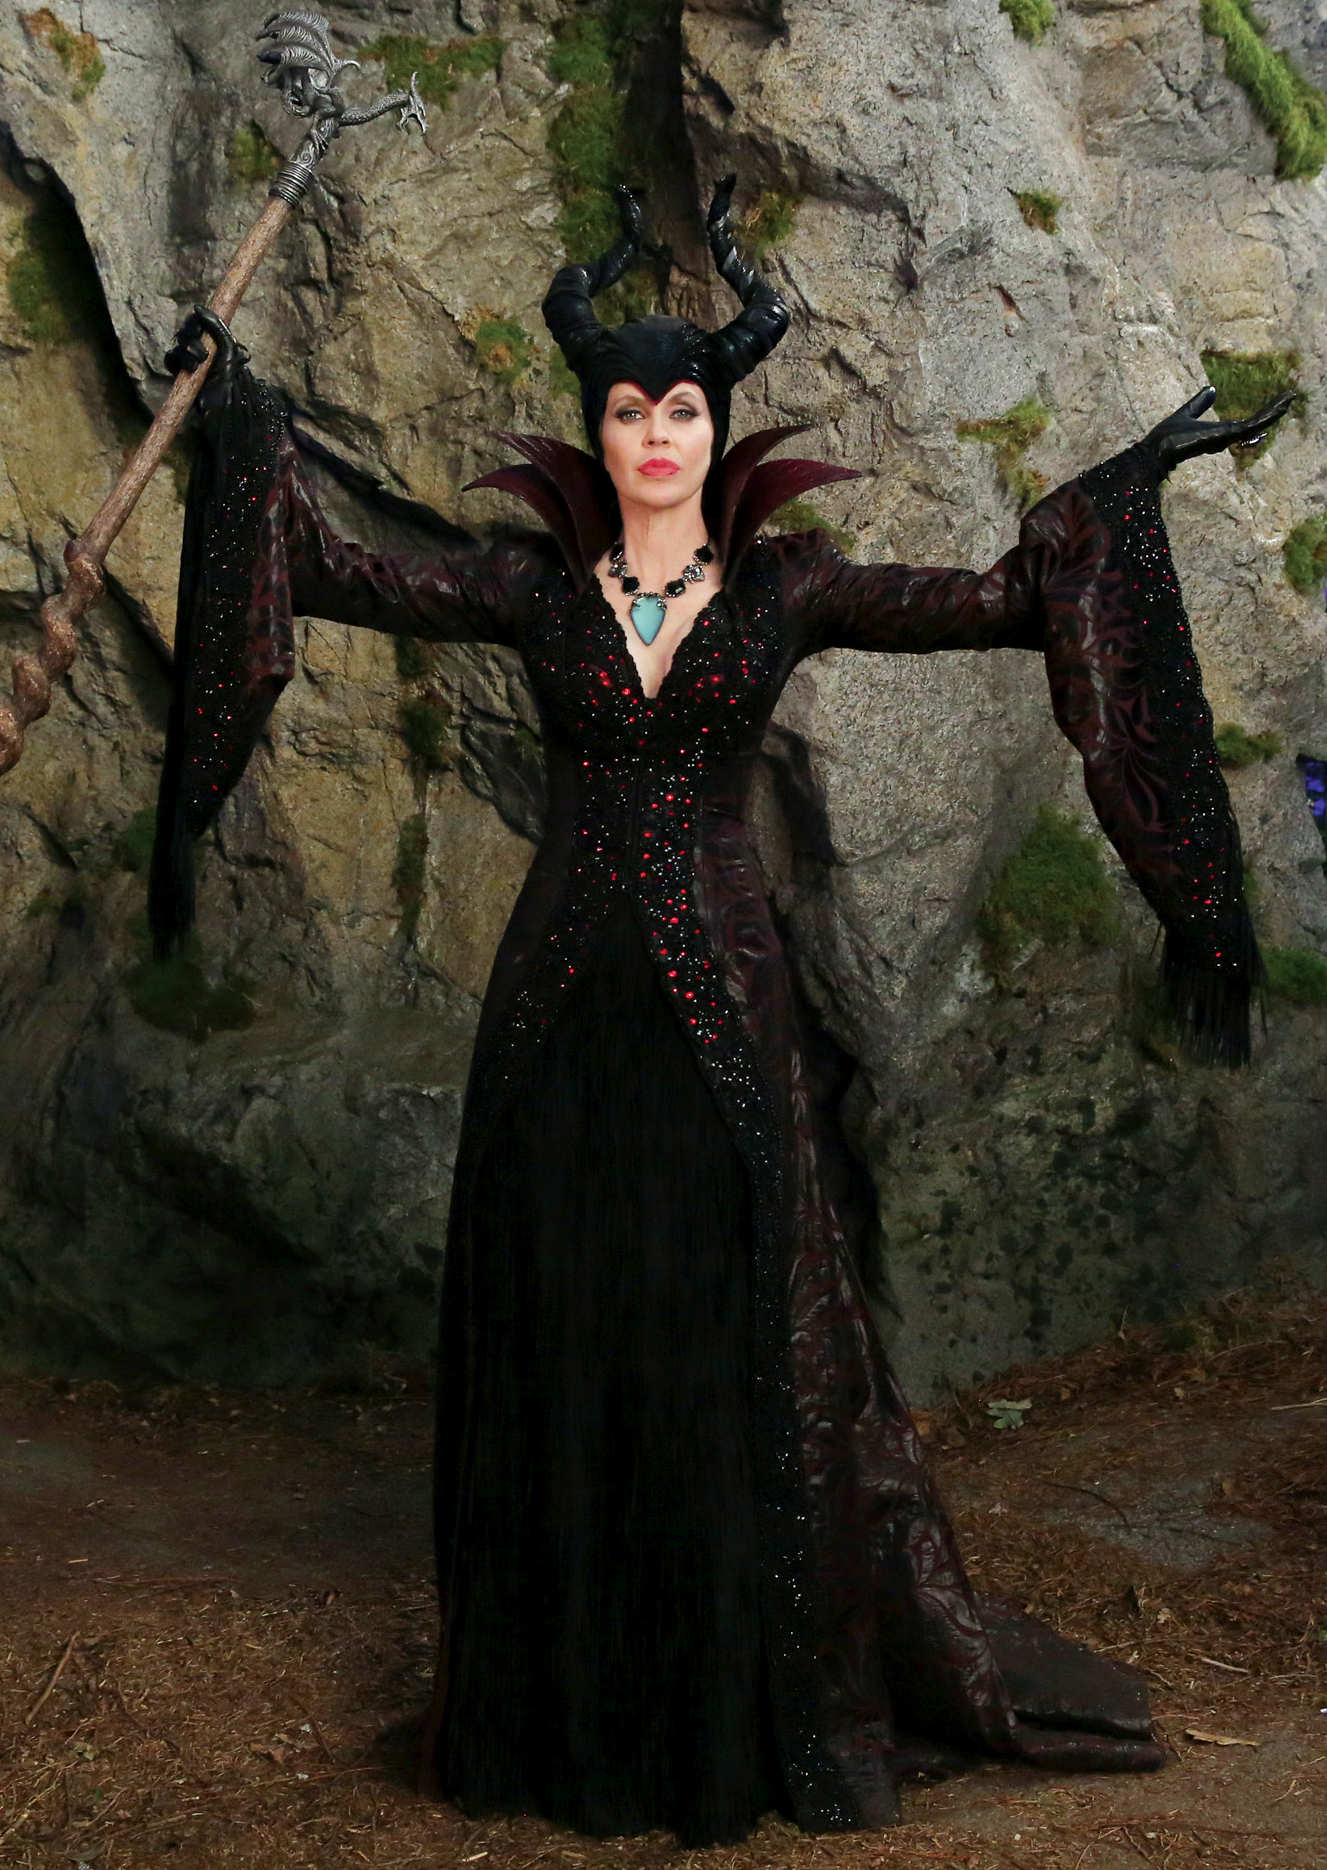 10 'Once Upon a Time' Characters We Love to Hate